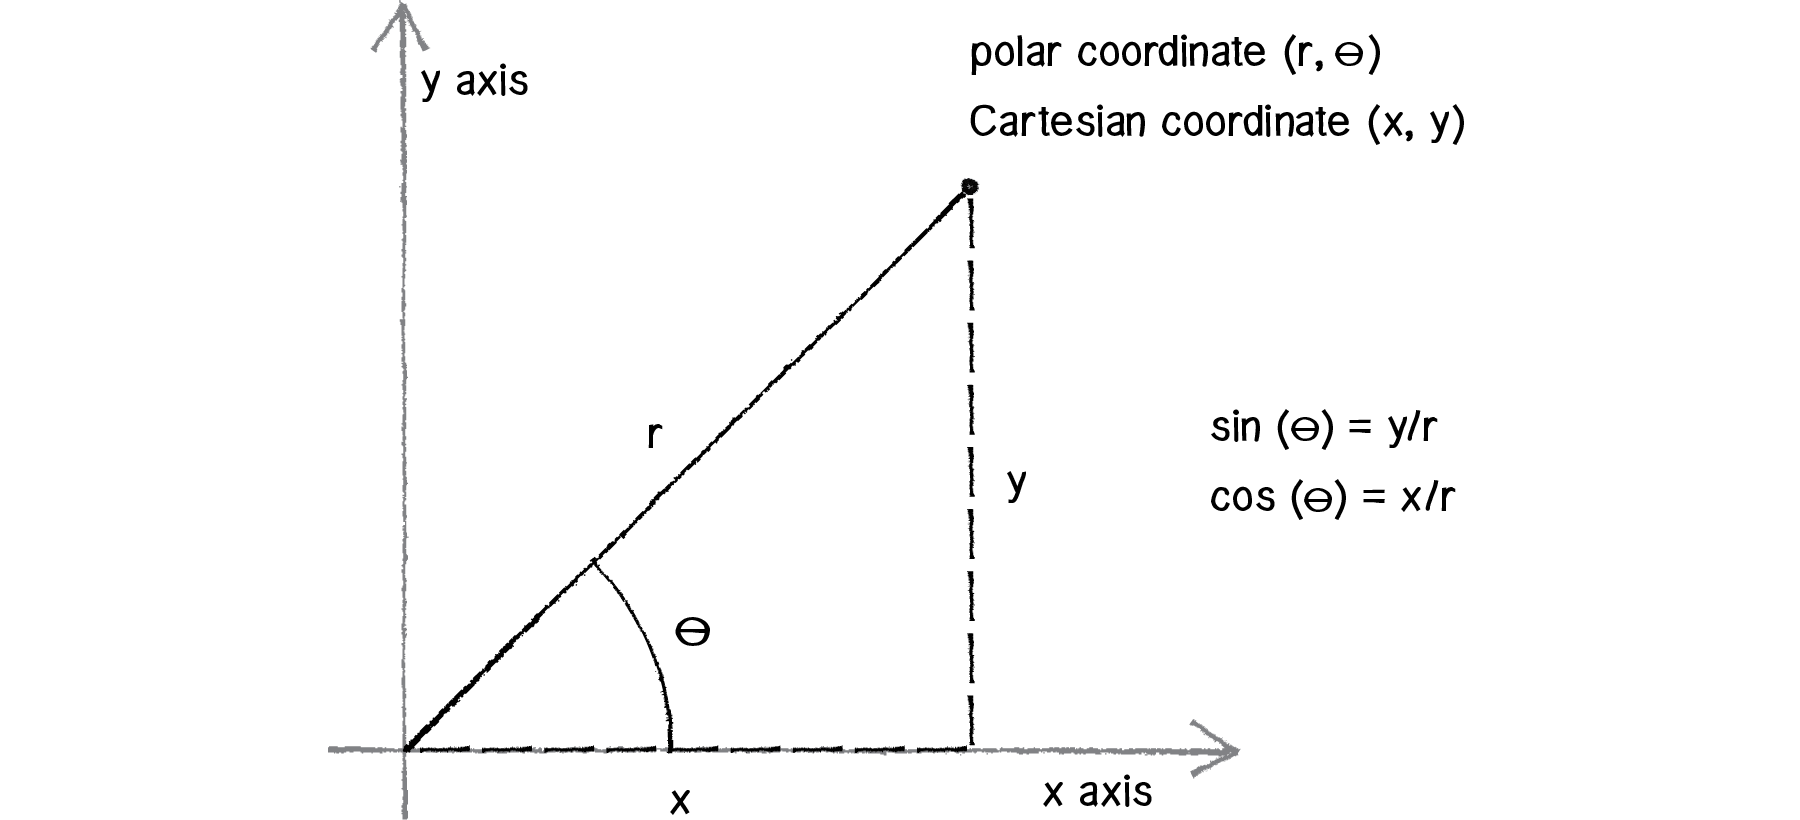 picture royalty free library Coordinates article khan academy. Vector angles polar coordinate